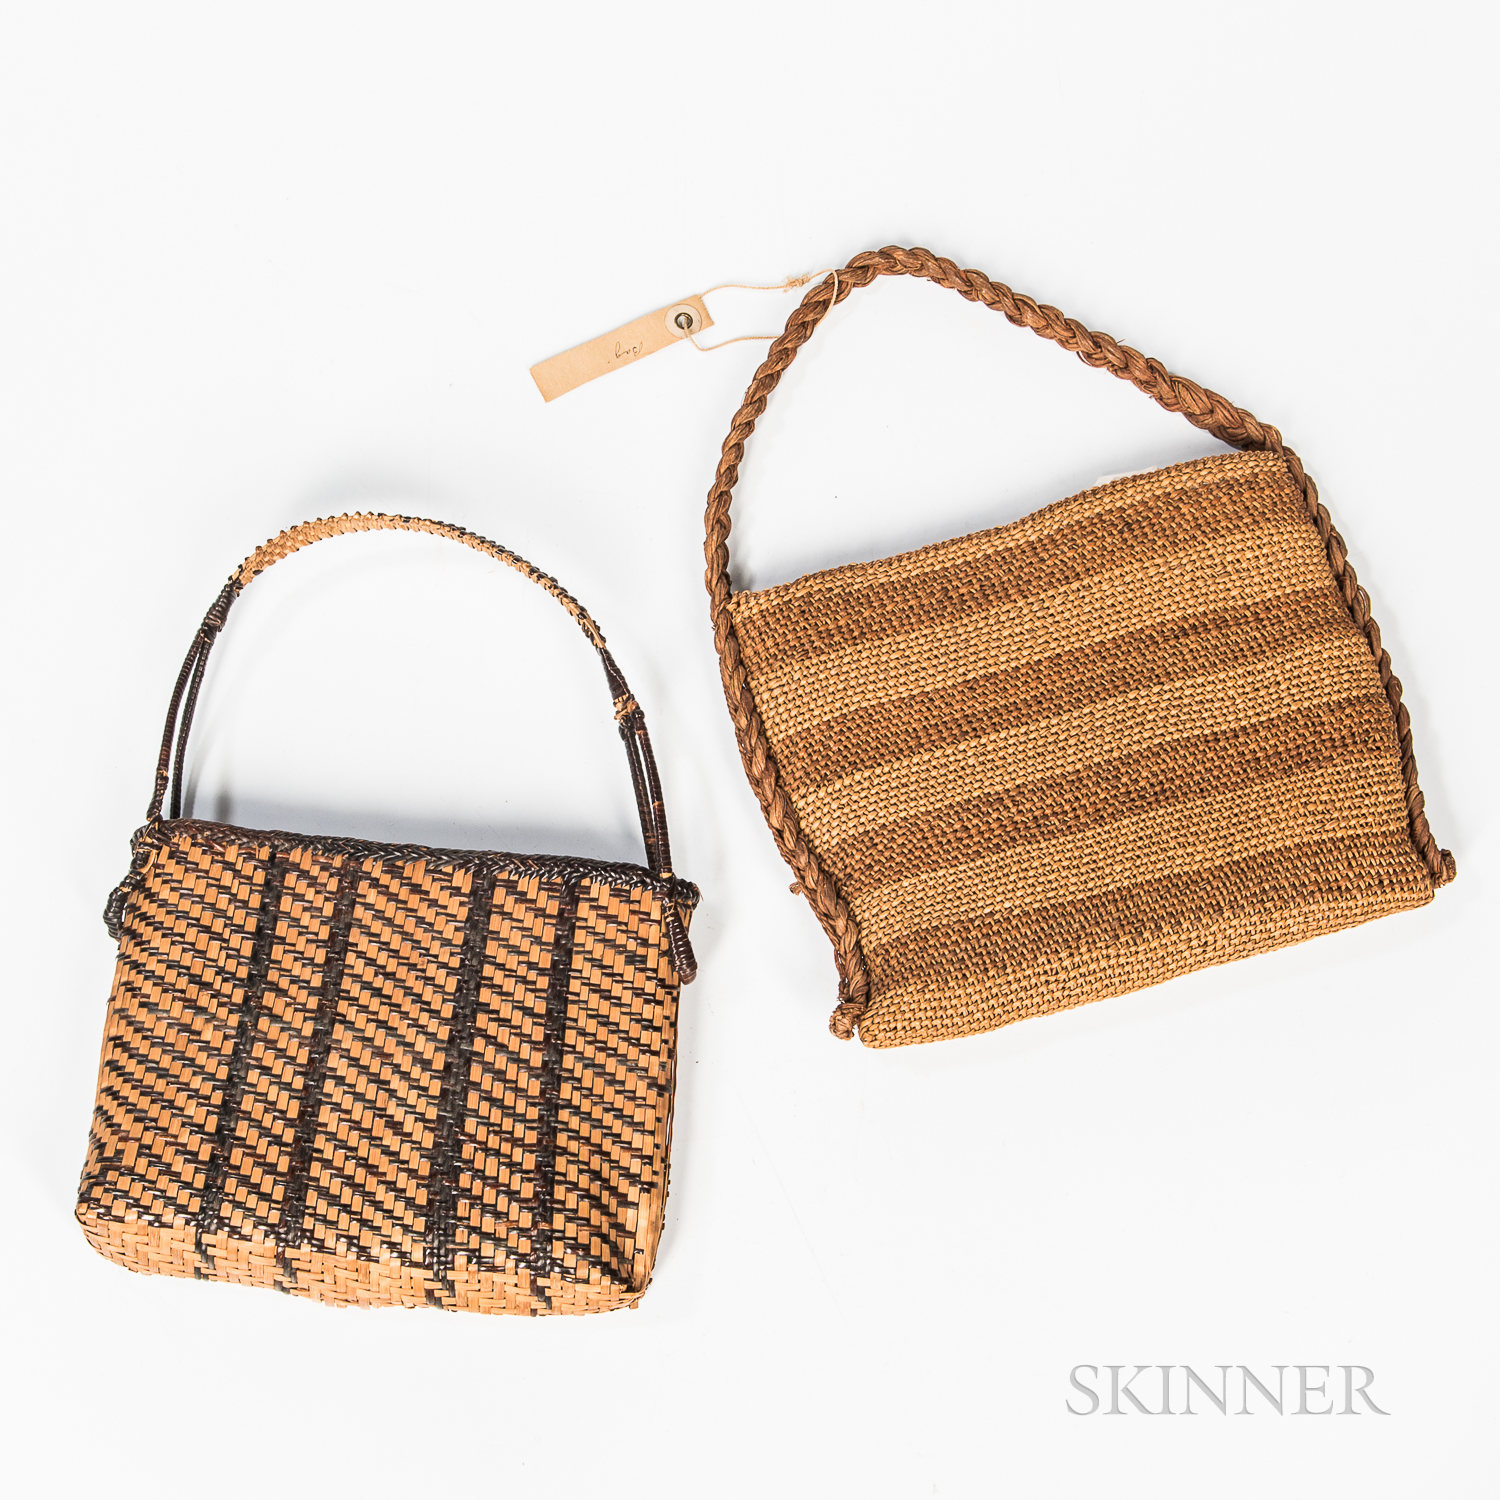 Two South American Bags